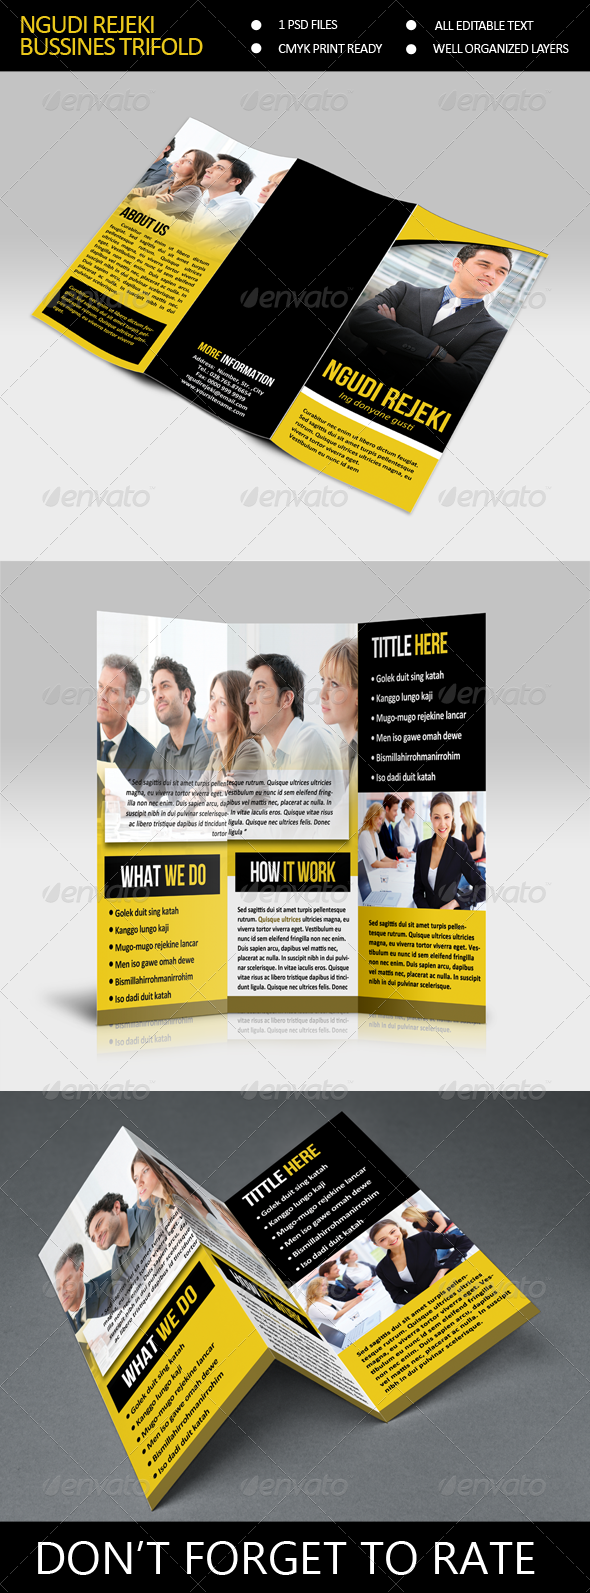 GraphicRiver NR Bussines Trifold Brocure Template 7801856